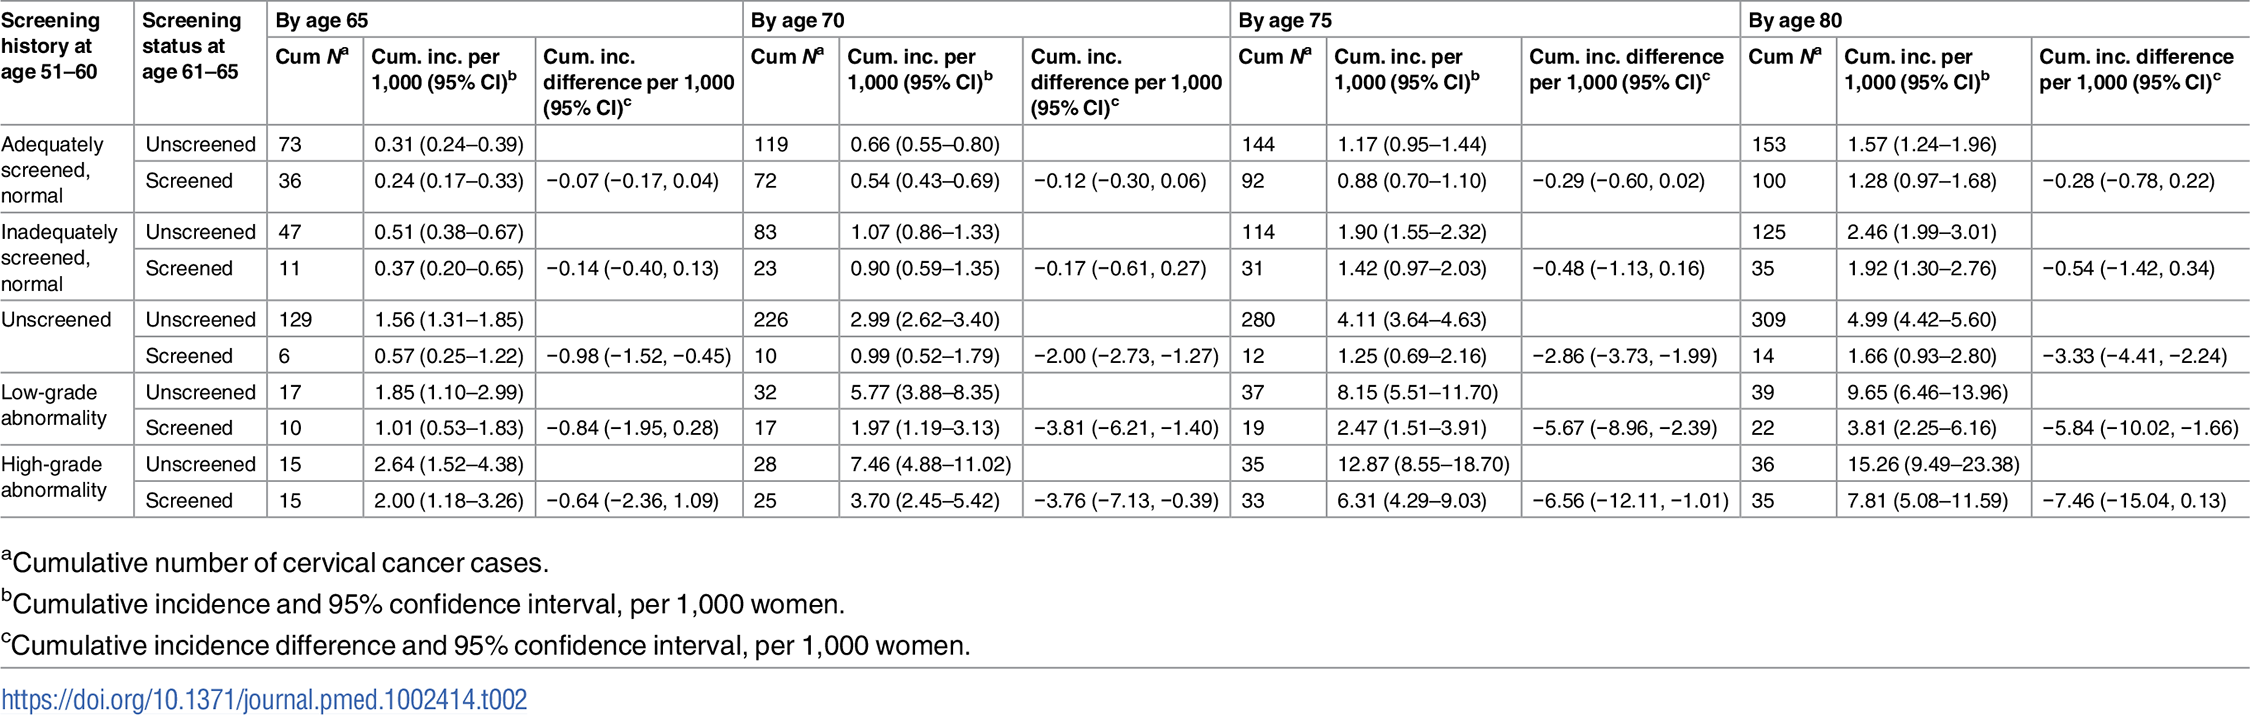 Number of cervical cancer cases, cumulative incidence, and cumulative incidence difference among women screened and unscreened at age 61–65, by screening history at age 51–60, for every 5 years of follow-up from age 61 to age 80, considering death and total hysterectomy as competing events.